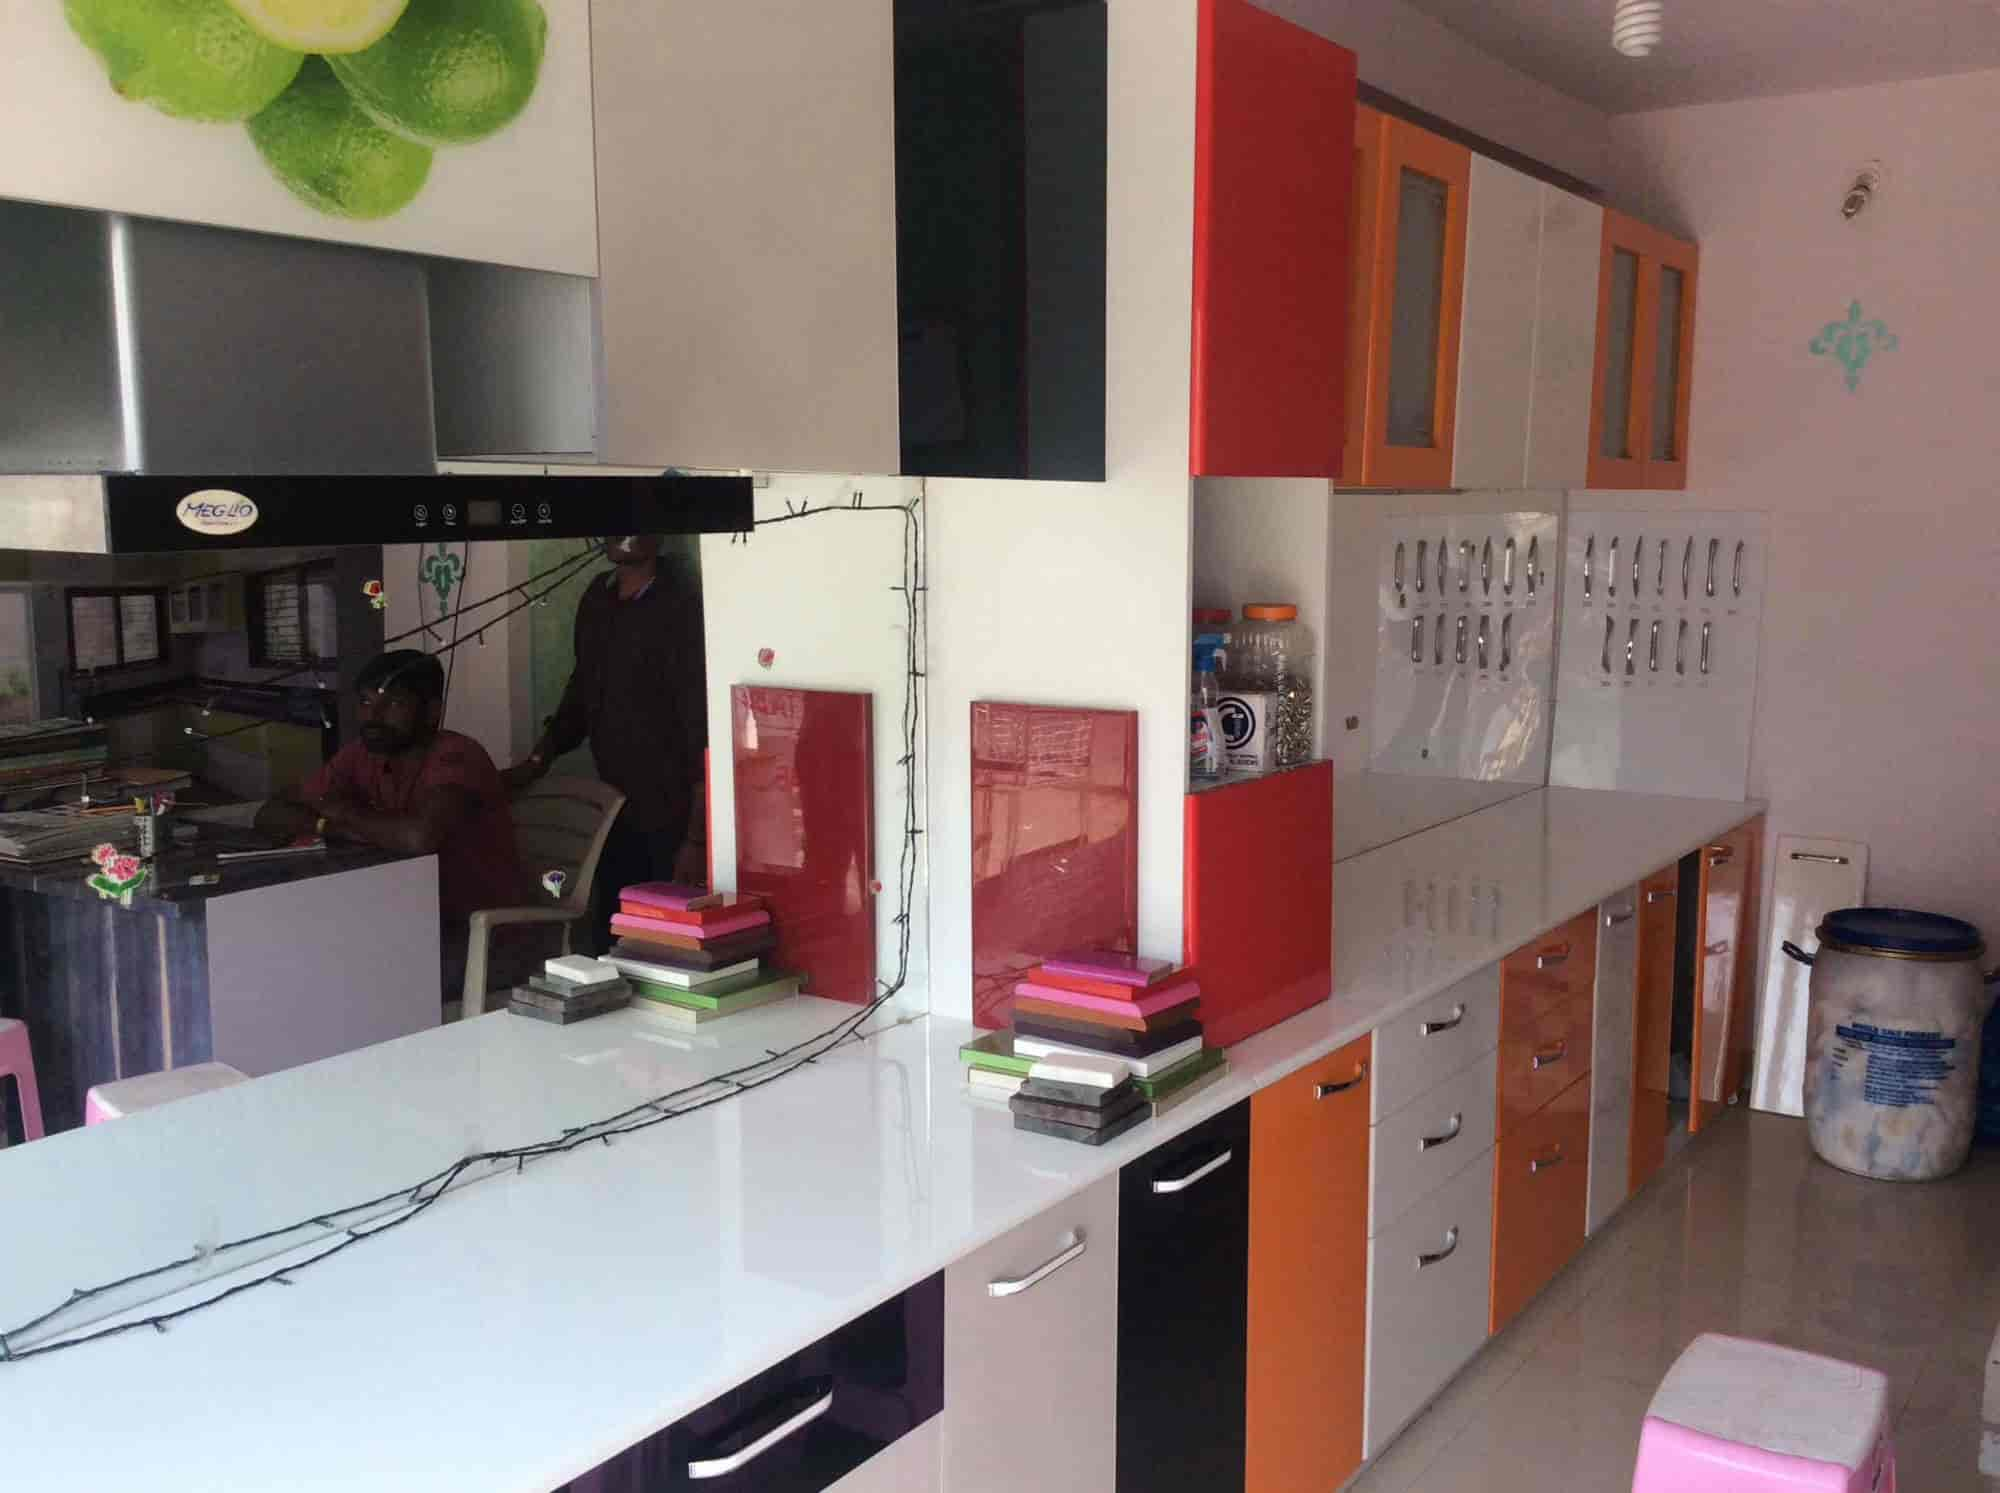 yogita kitchen express kalher interior designers in mumbai justdial - Kitchen Express